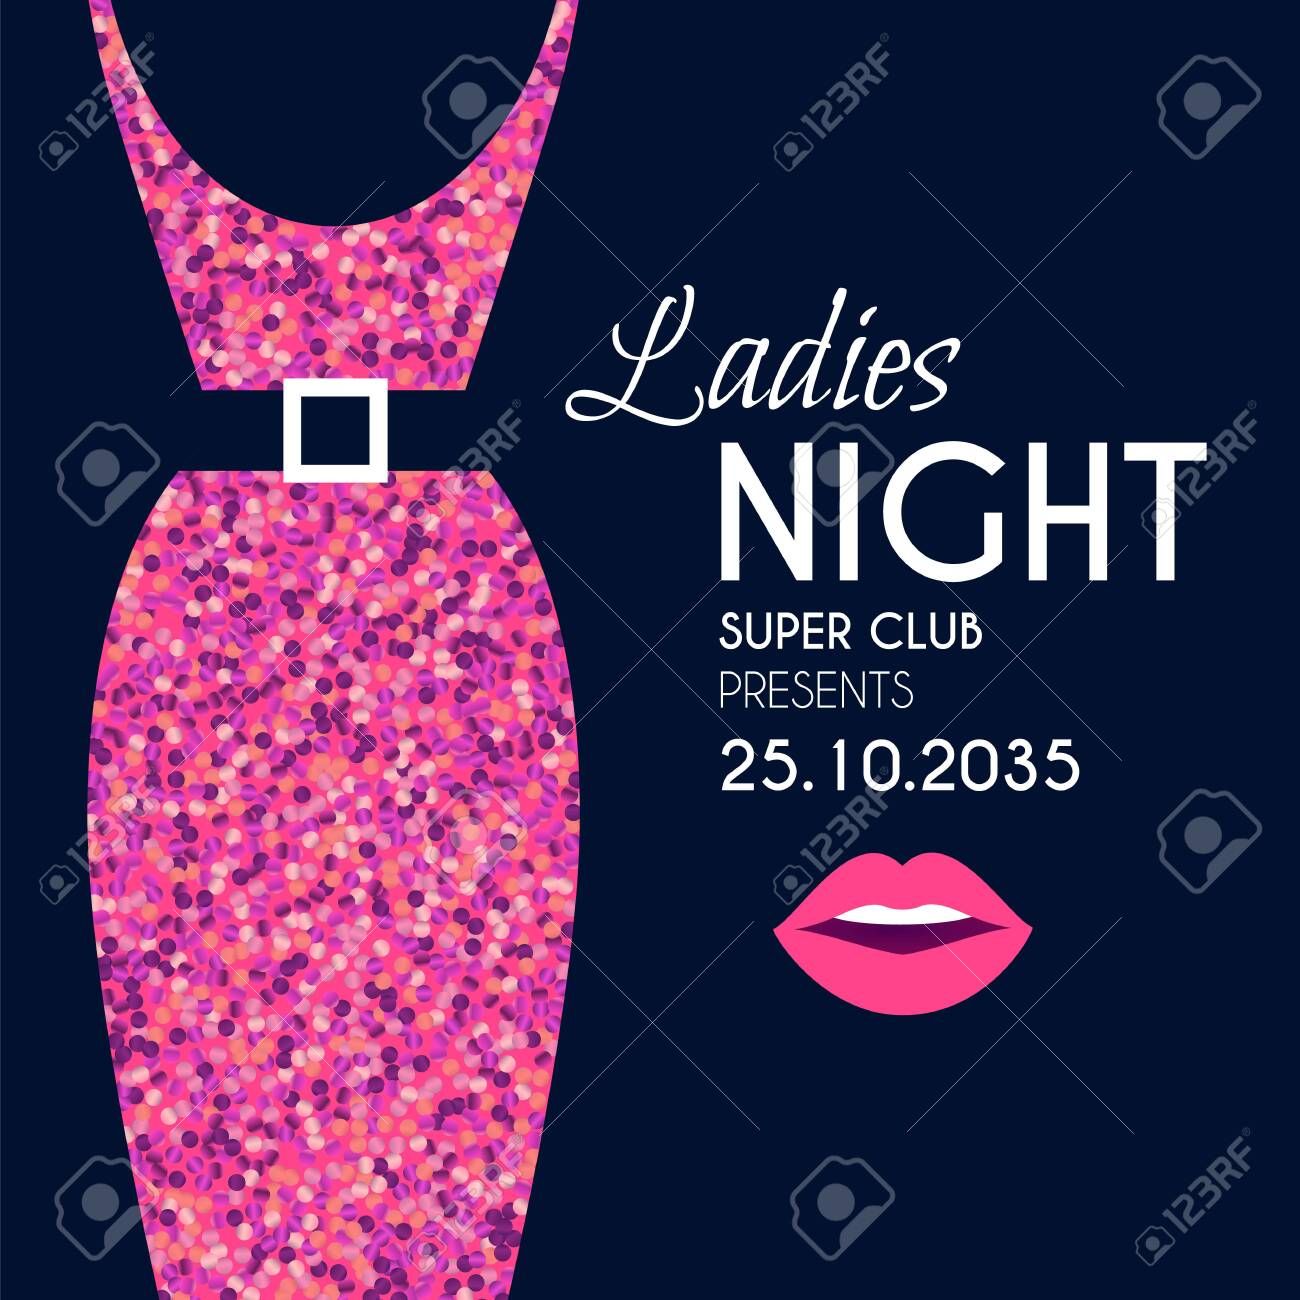 Ladies night glamour party flyer template withelegant dress silhouette and lips. - 147427943